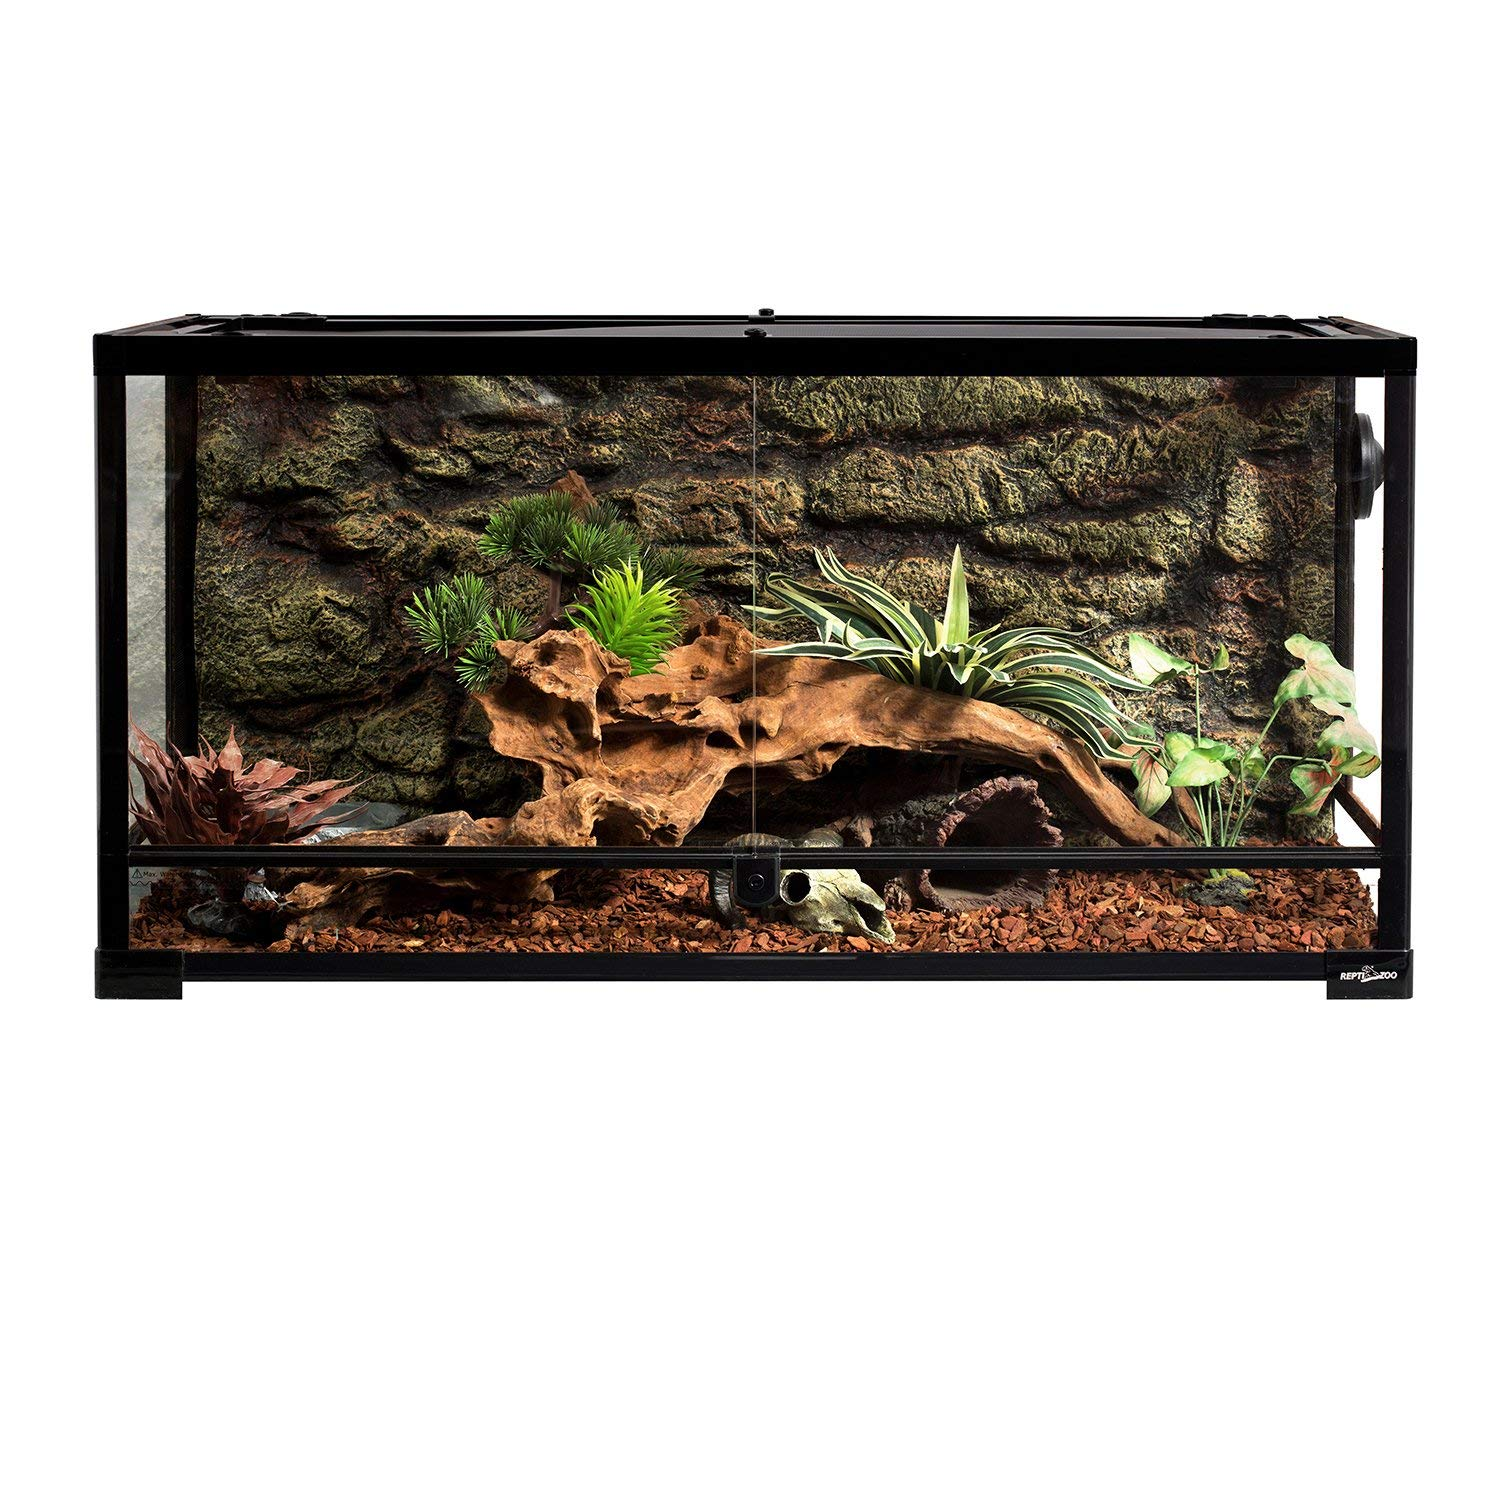 Cheap Diy Reptile Glass Terrarium Find Diy Reptile Glass Terrarium Deals On Line At Alibaba Com